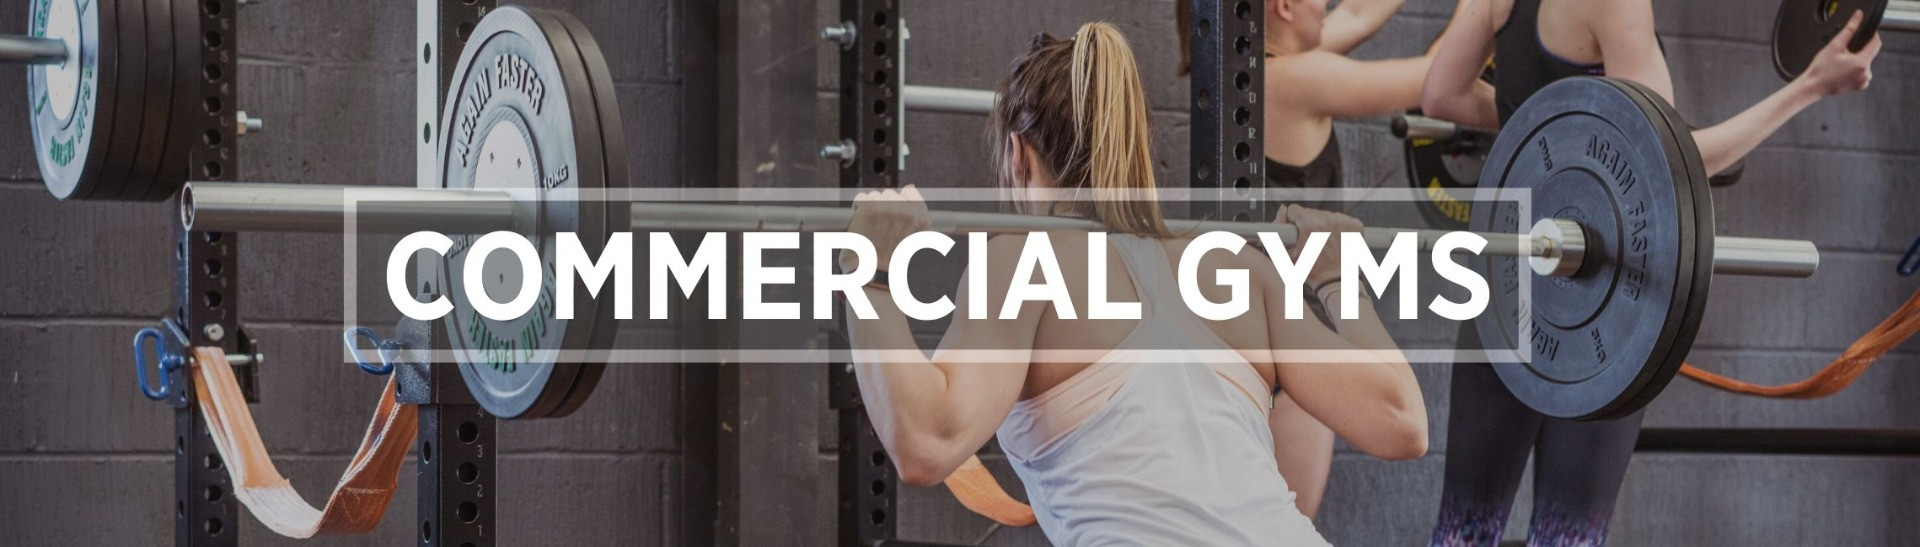 Commercial Gyms